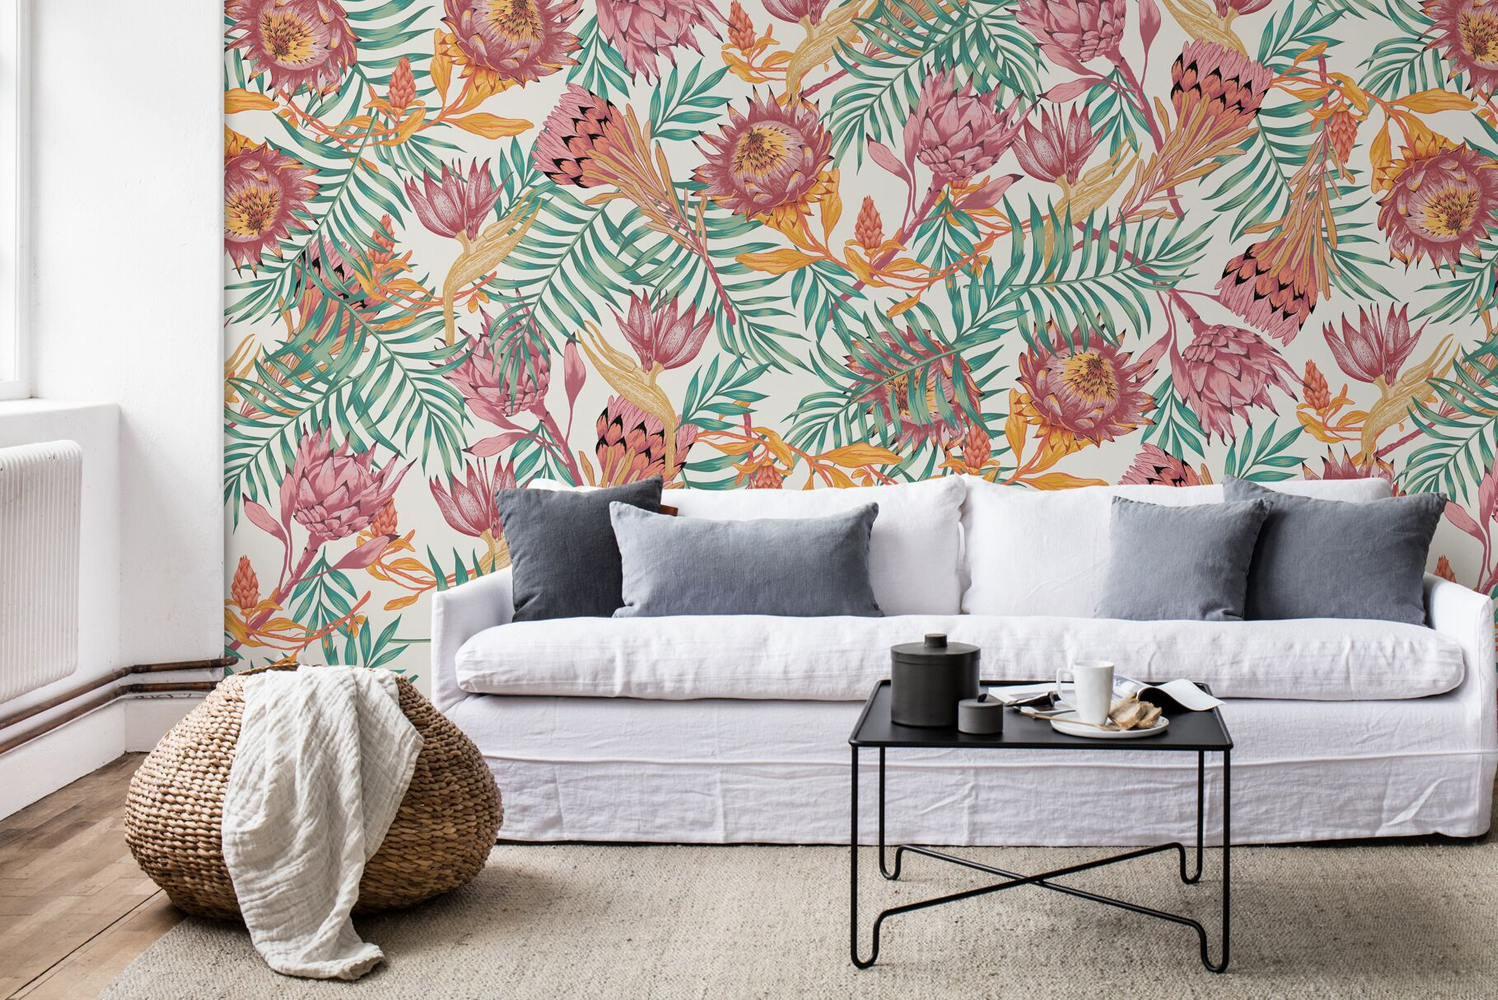 Some of the wallpapers were said to be inspired by nature.